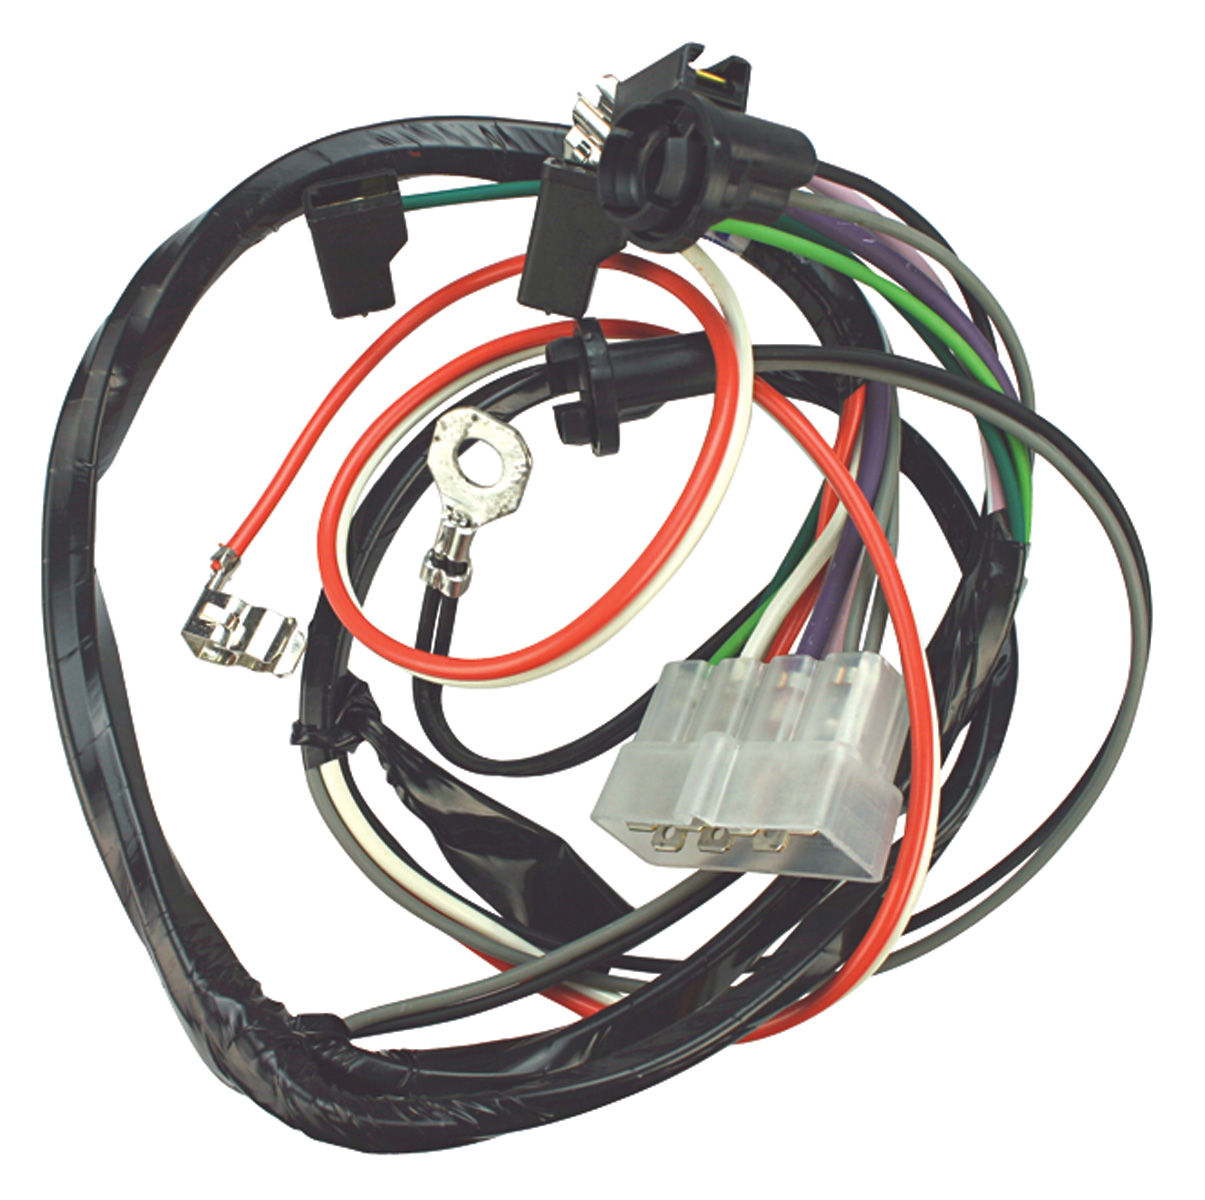 1970 Chevelle Console Wiring Harness Circuit And Diagram Hub M H 1968 72 Automatic Dash Tach